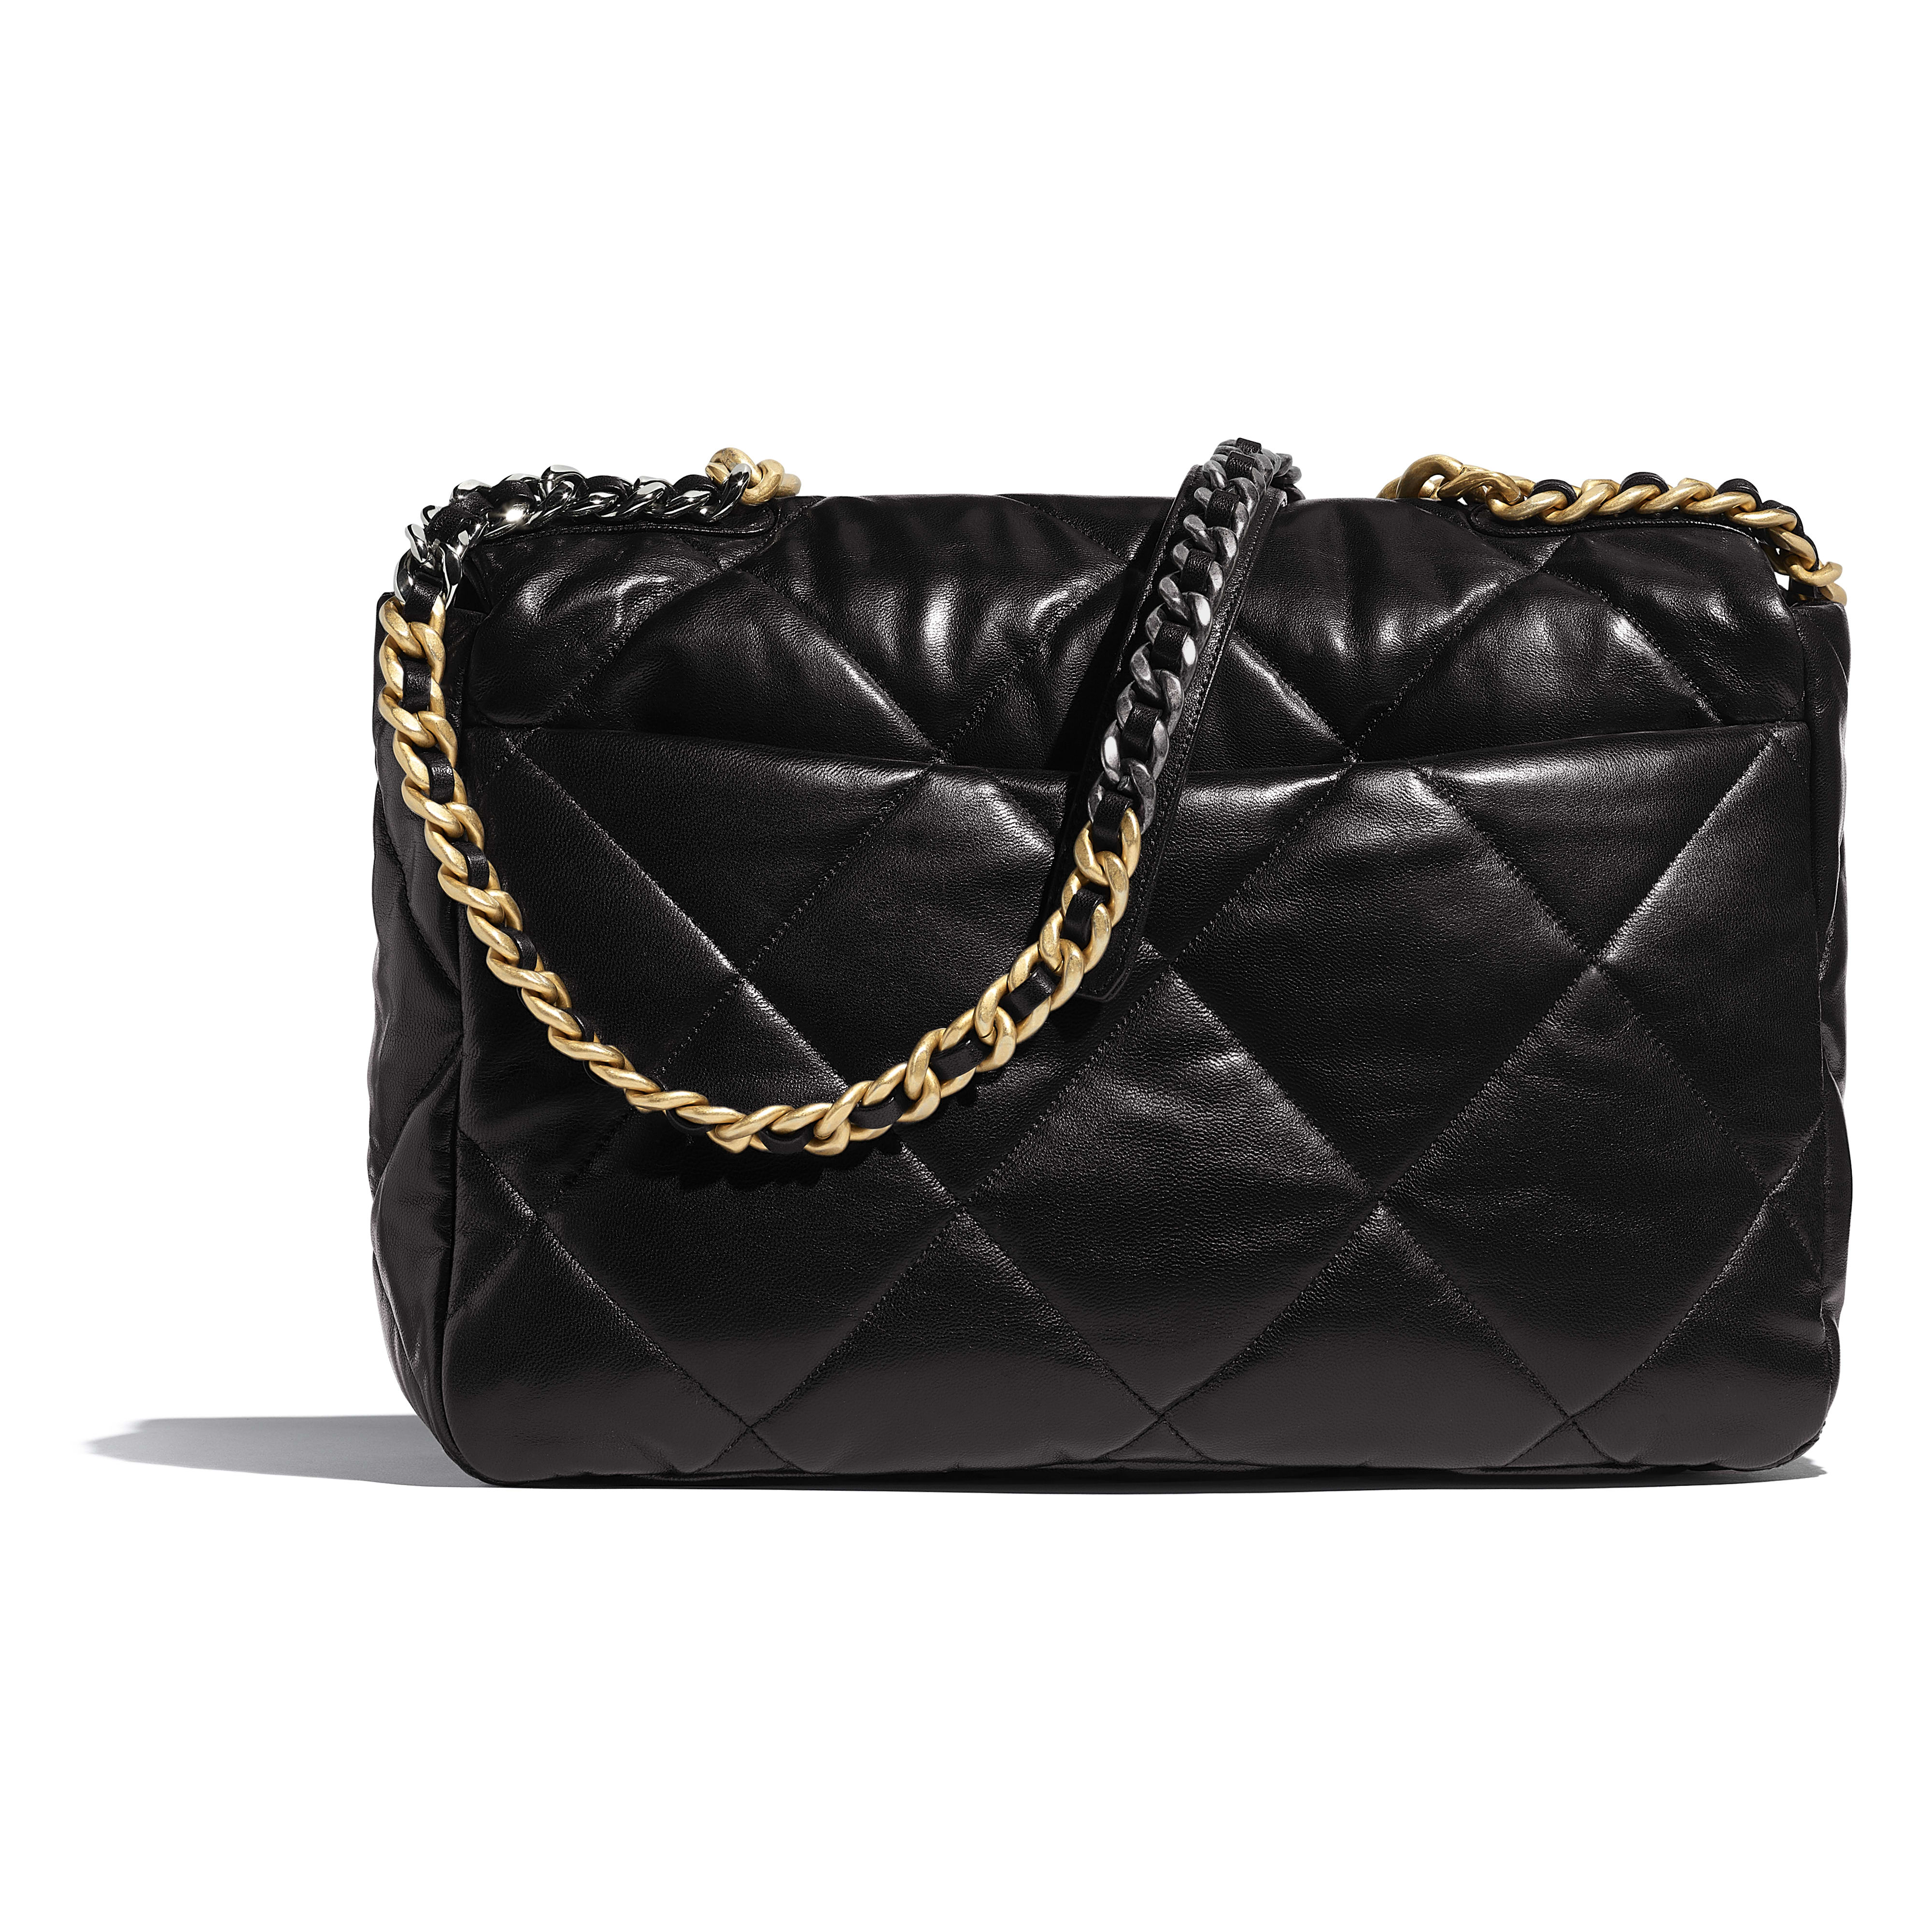 CHANEL 19 Maxi Flap Bag - Black - Lambskin, Gold-Tone, Silver-Tone & Ruthenium-Finish Metal - CHANEL - Alternative view - see standard sized version